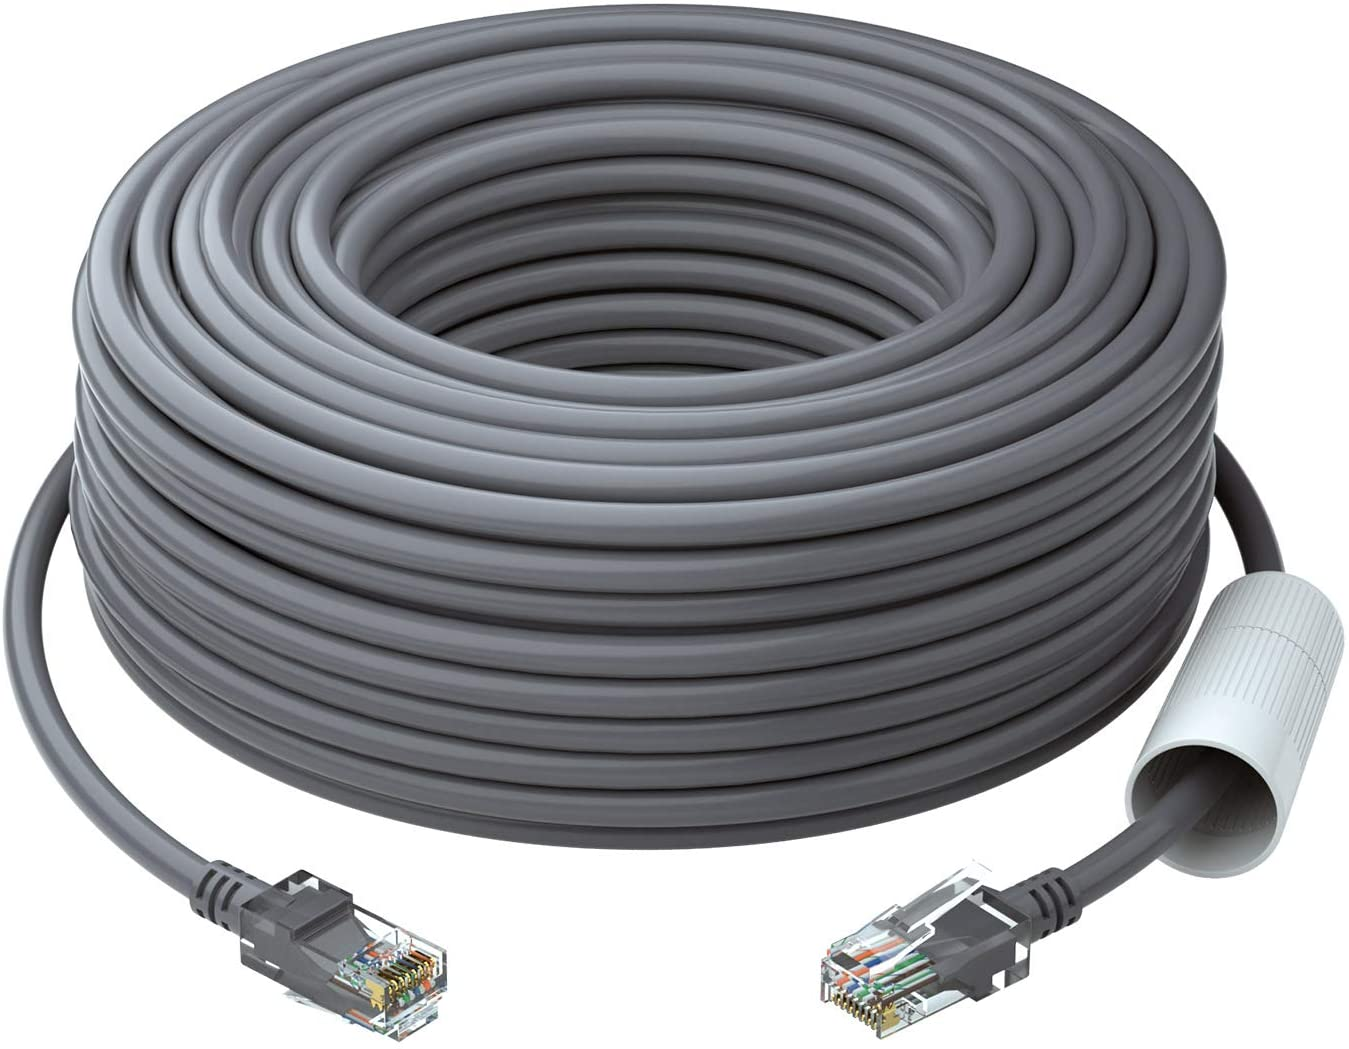 4 RJ45 Computer Network Internet Wire PoE Switch Cord Lknewtrend 200FT Feet CAT5 Cat5e Ethernet Patch Cable 4 Pack, 200 FT